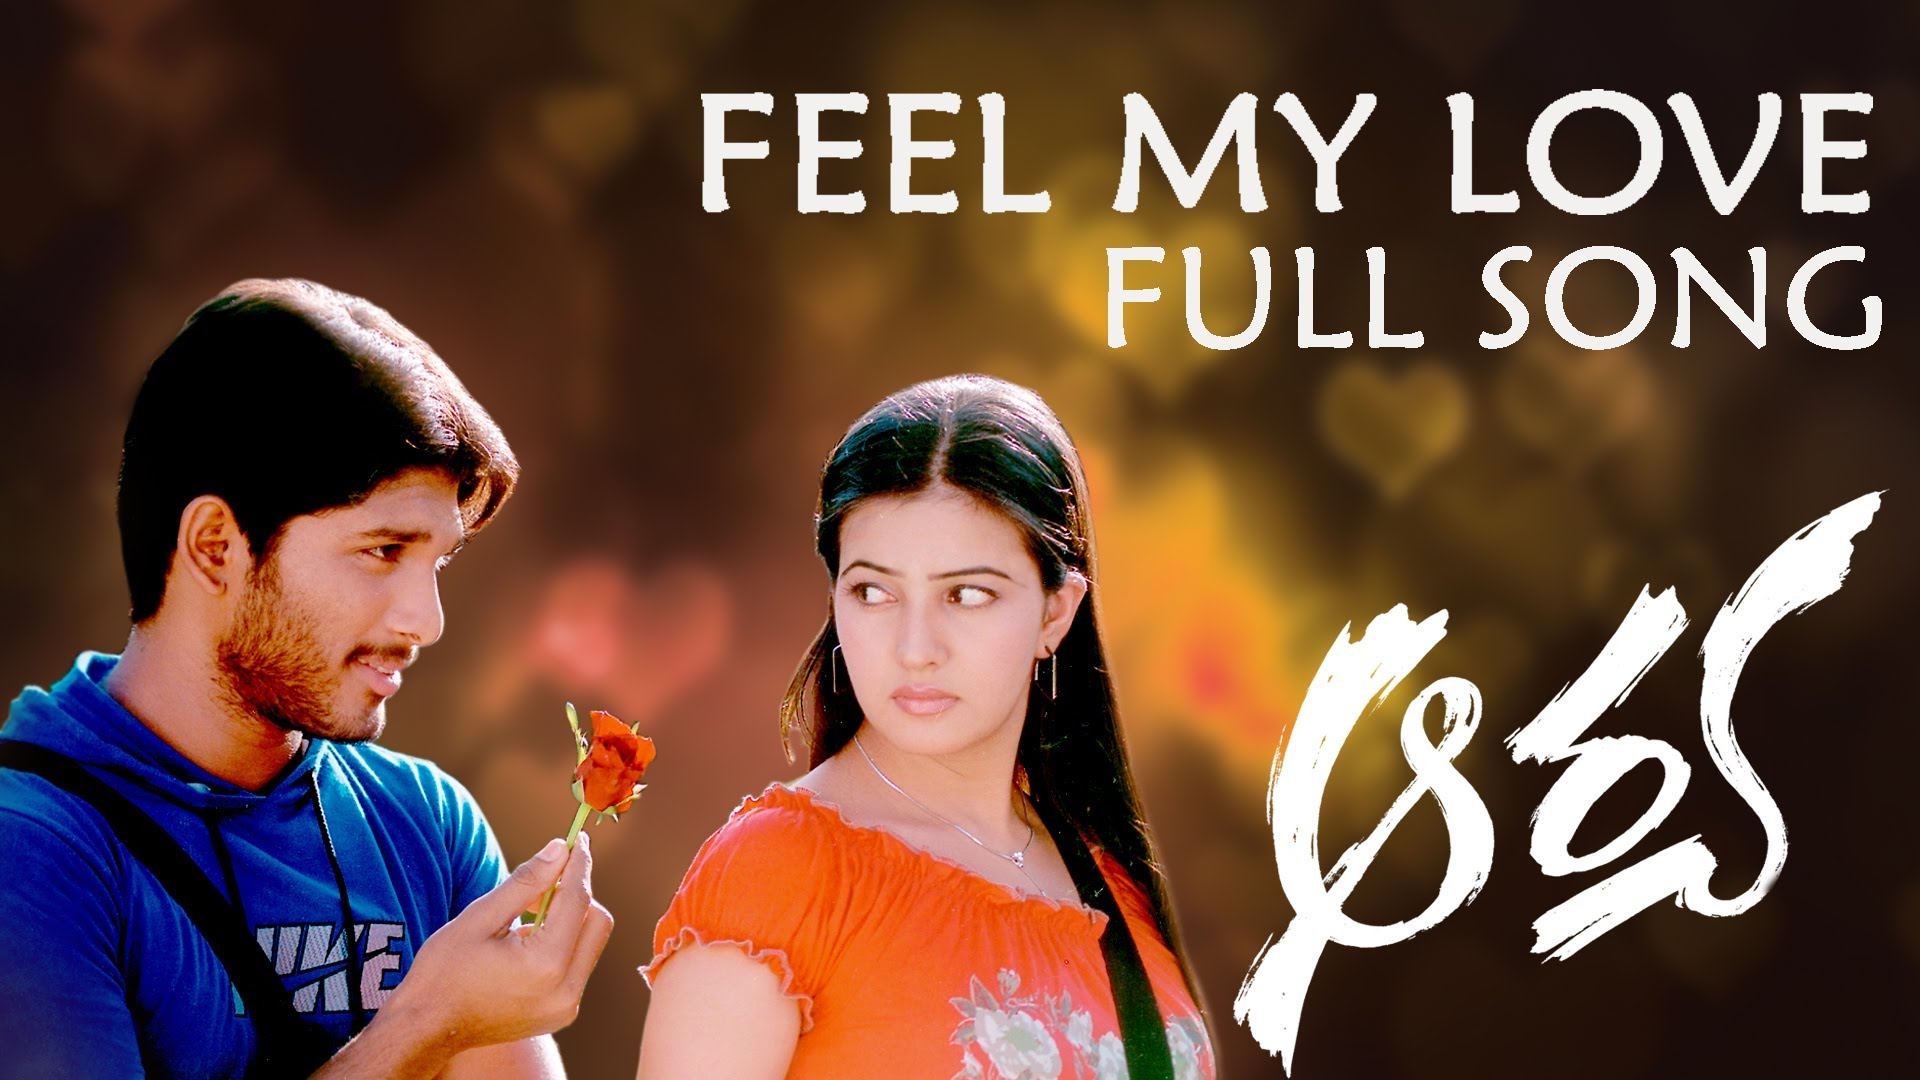 Arya Telugu Movie Wallpapers